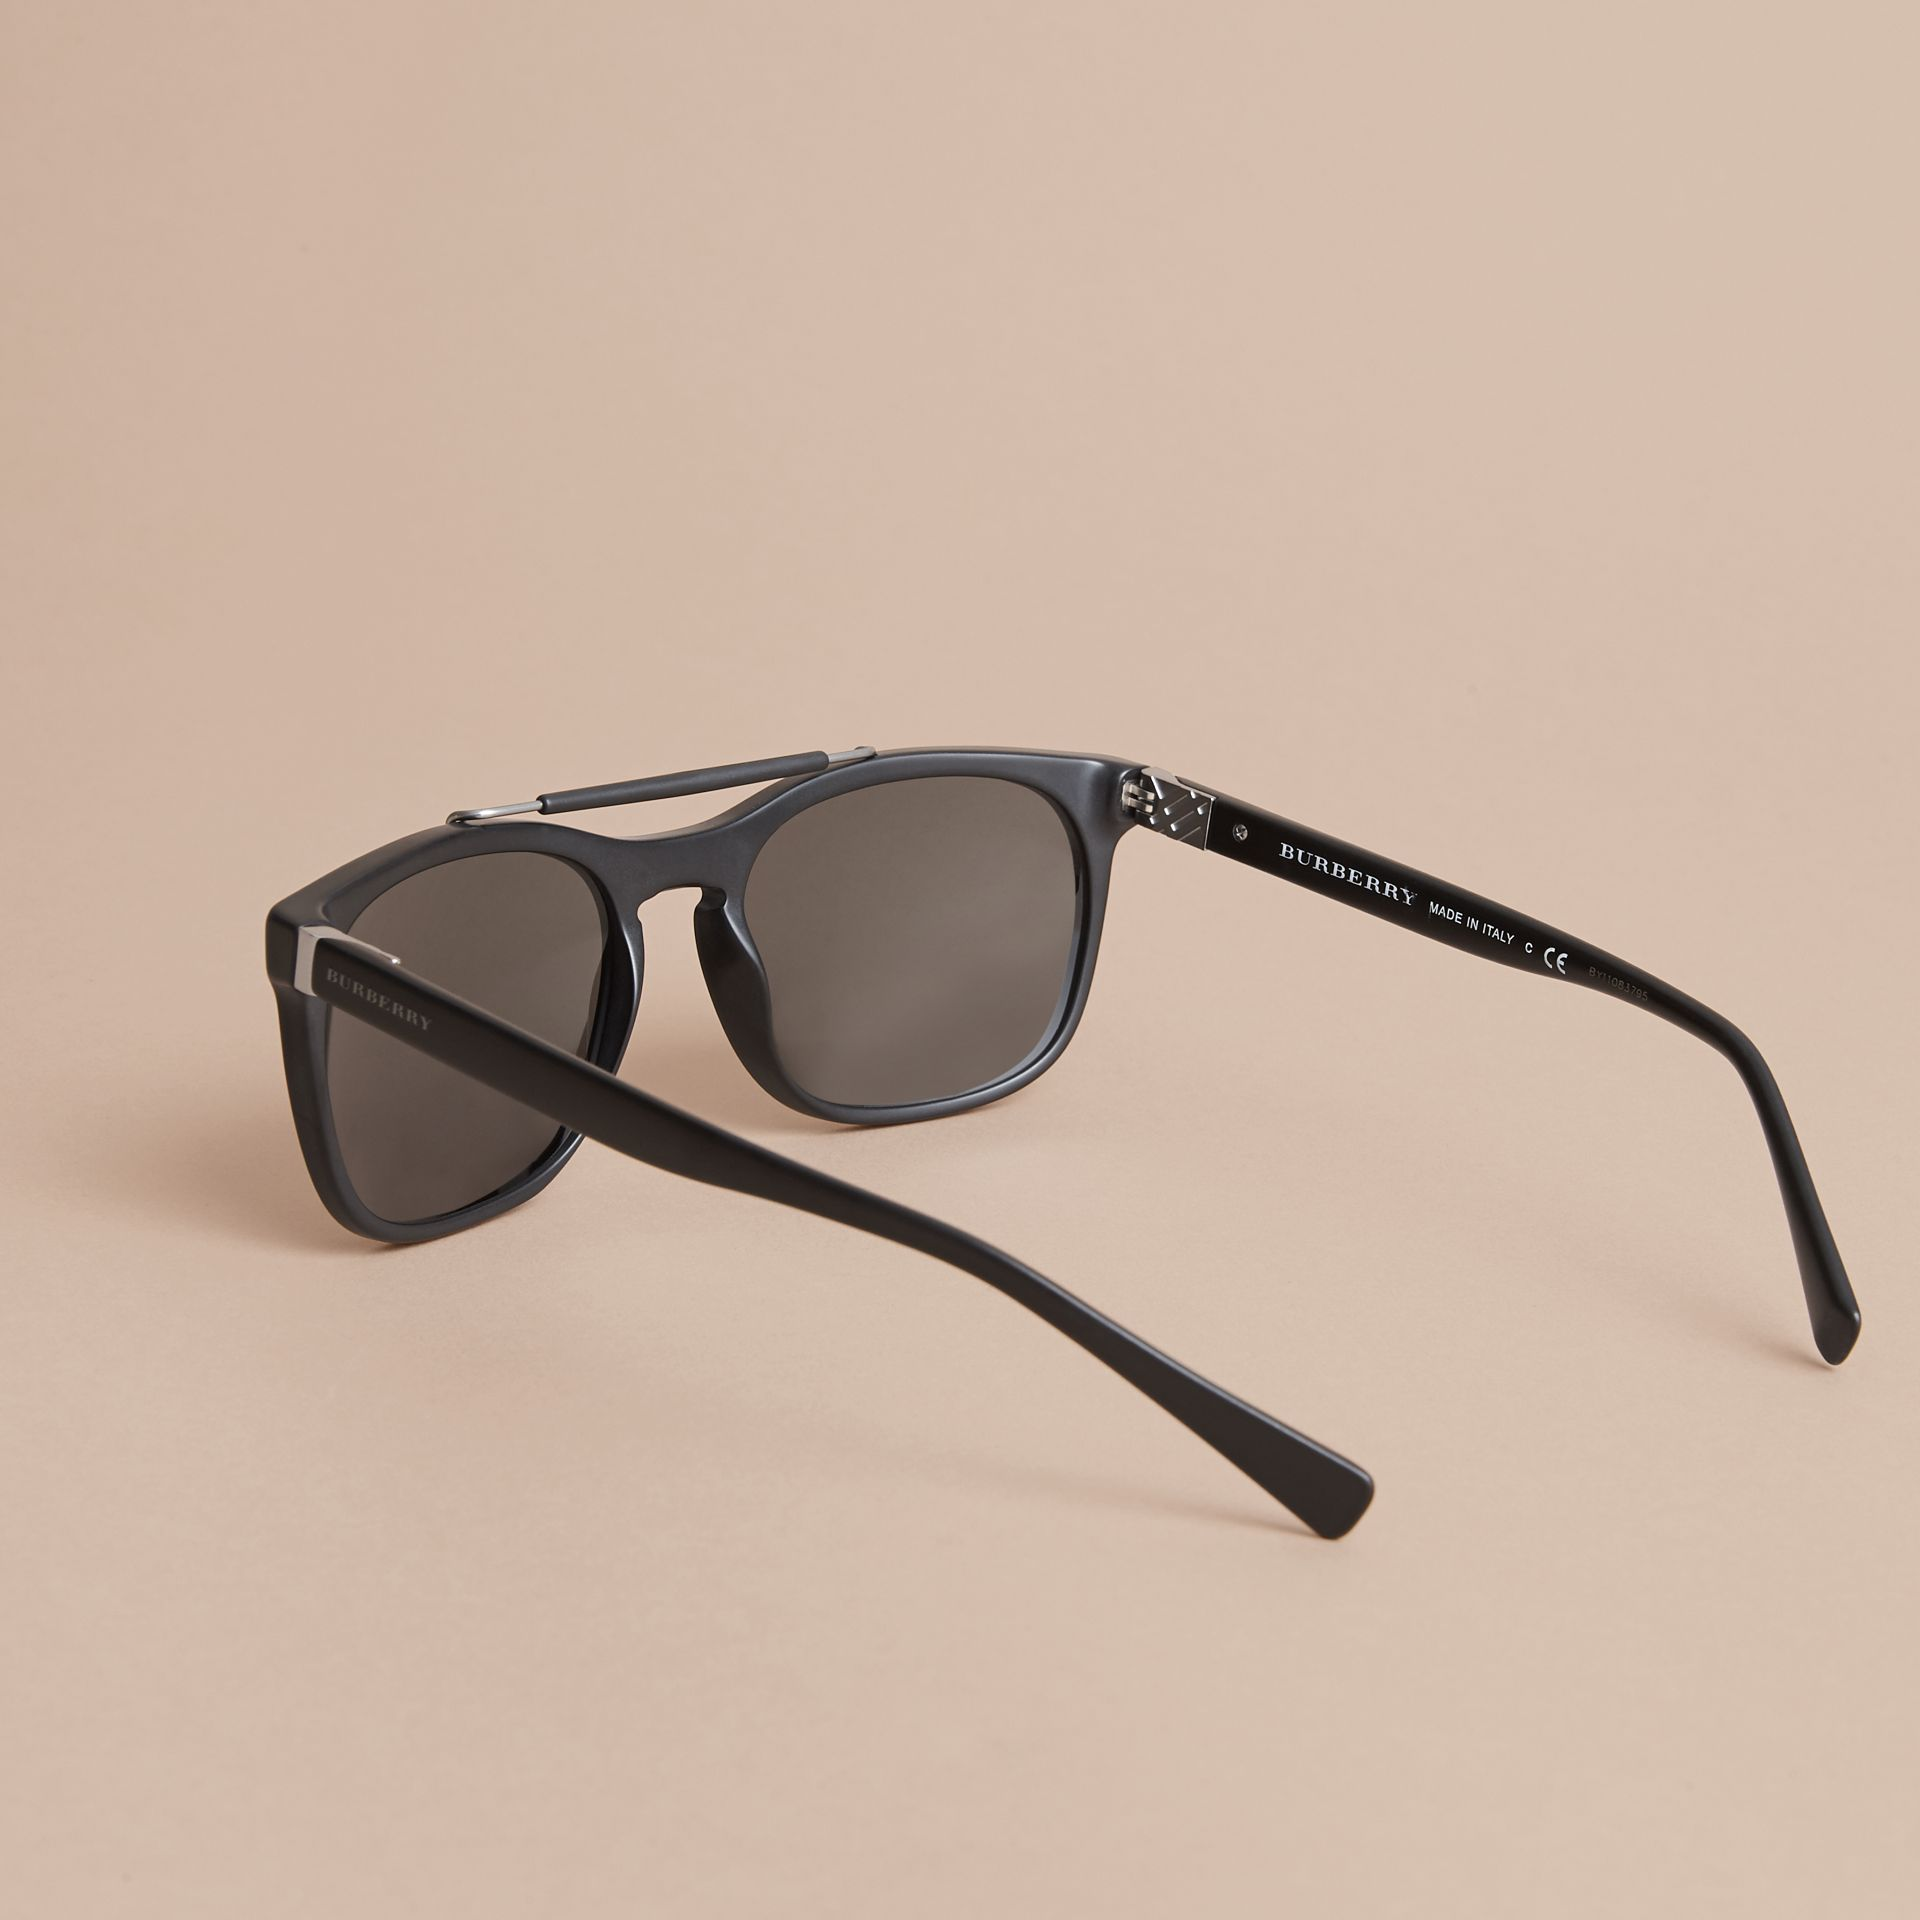 Top Bar Square Frame Sunglasses in Black | Burberry - gallery image 3